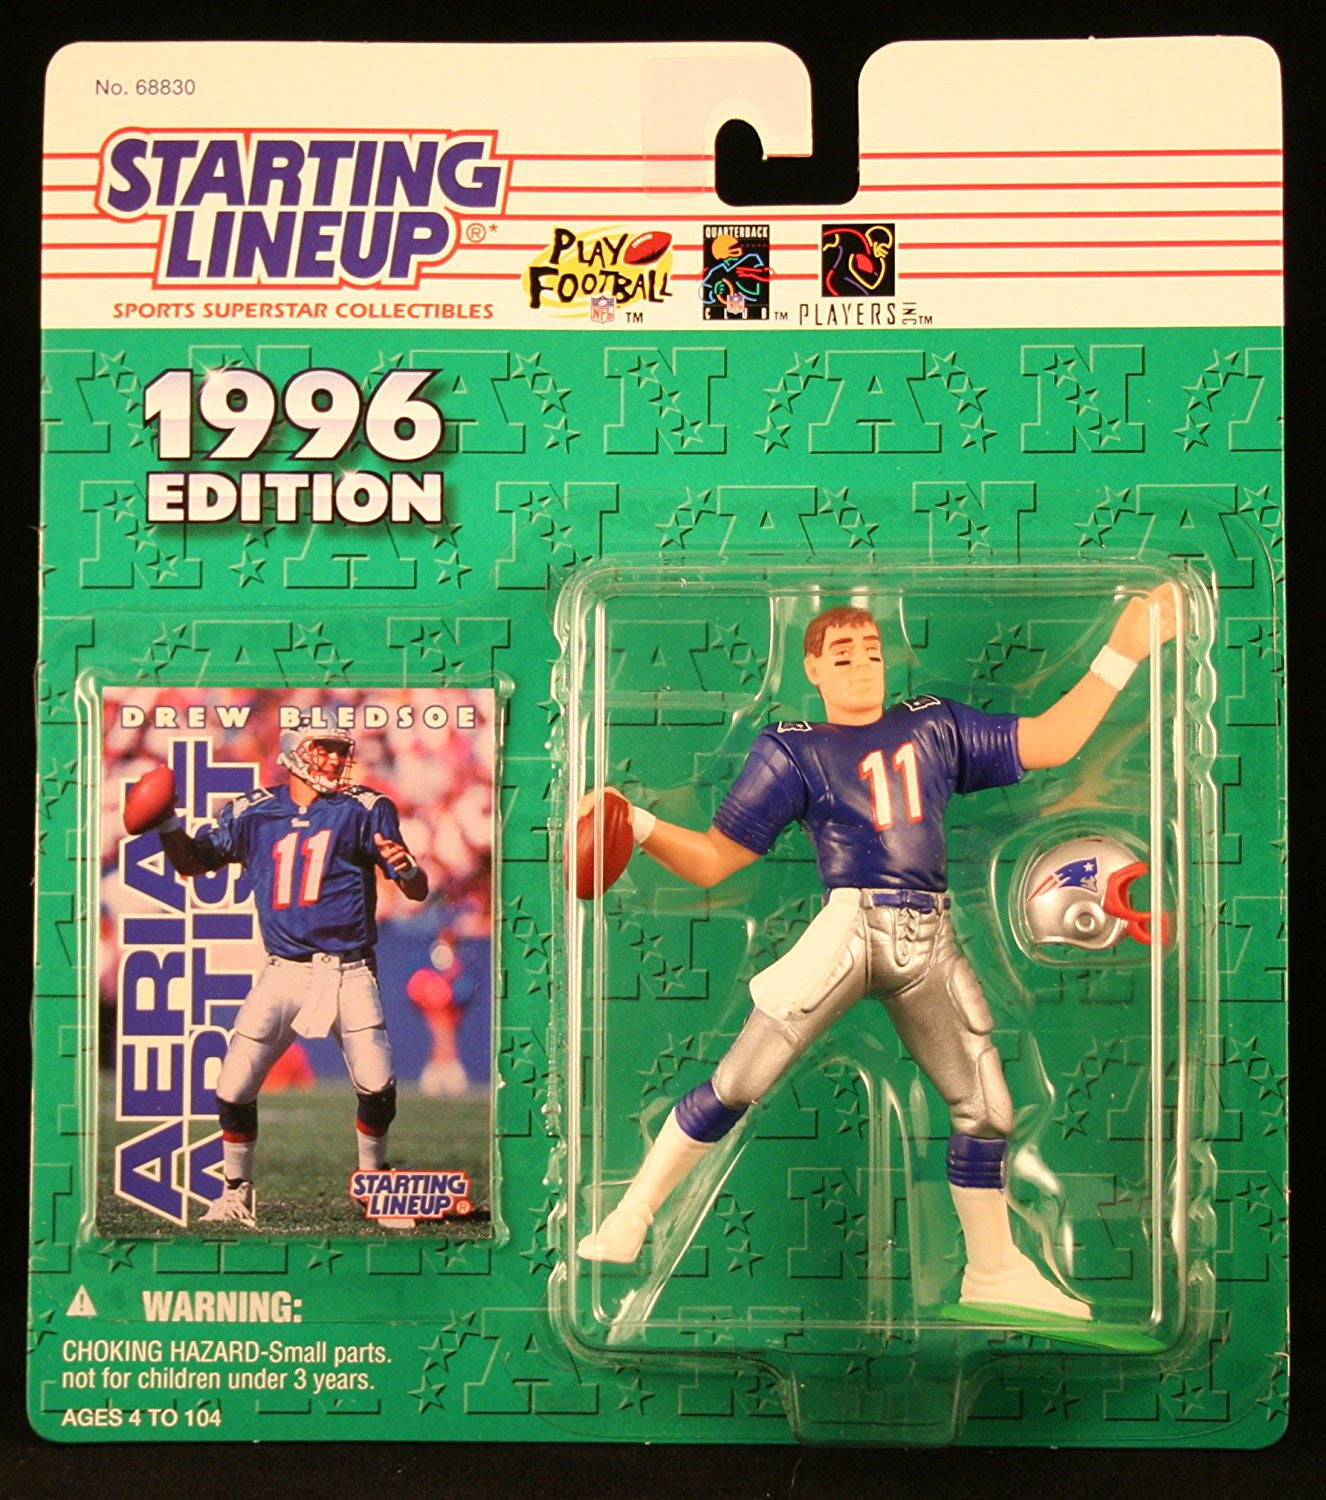 DREW BLEDSOE / NEW ENGLAND PATRIOTS 1996 NFL Starting Lineup Action Figure & Exclusive NFL Collector Trading Card